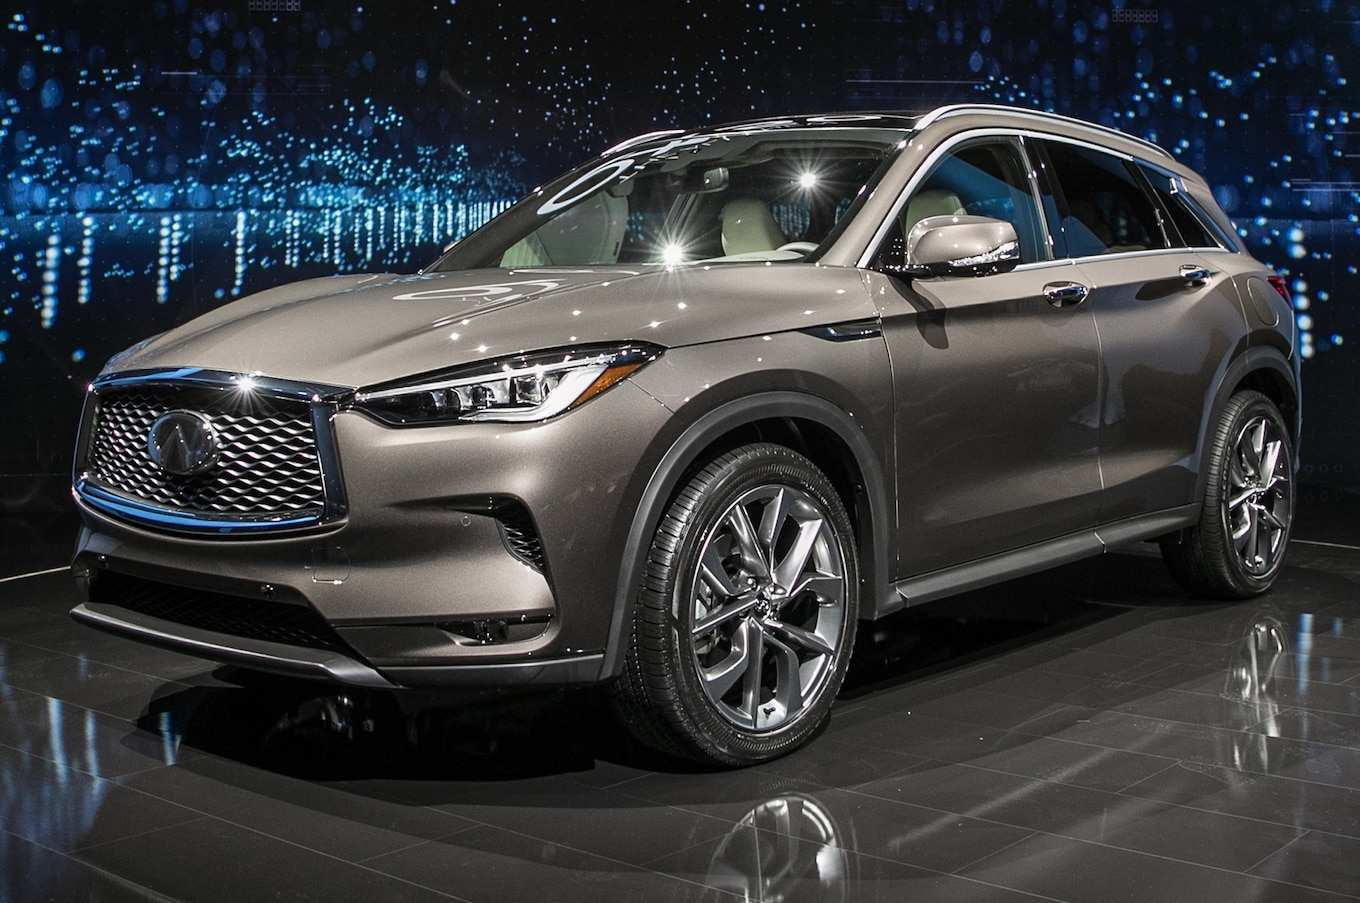 97 A 2019 Infiniti Qx50 Crossover History